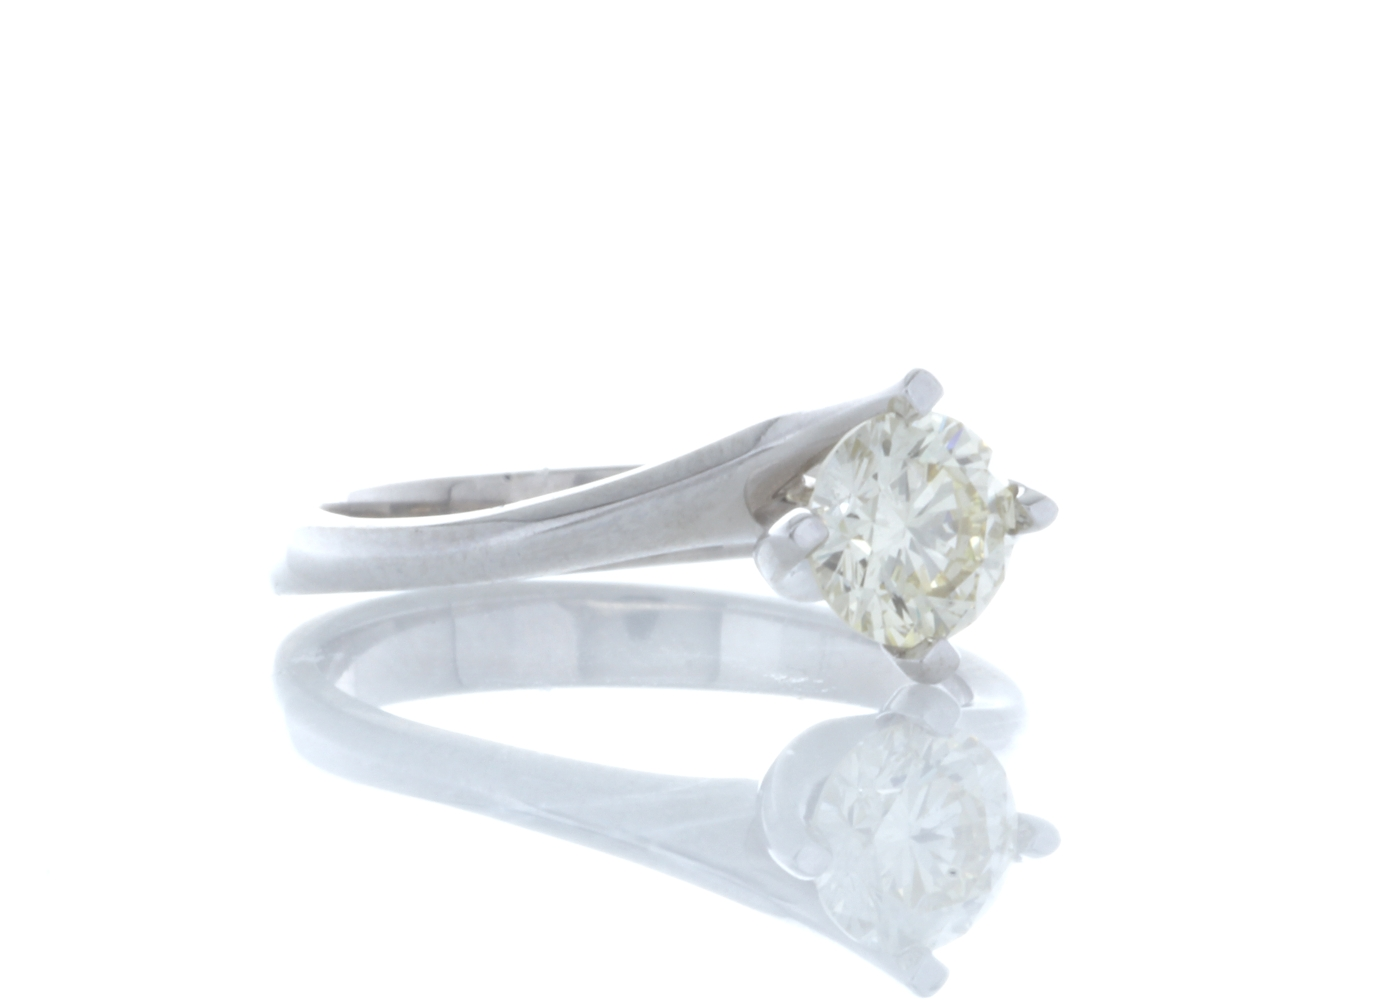 18ct White Gold Single Stone Fancy Claw Set Diamond Ring 0.71 Carats - Image 4 of 5